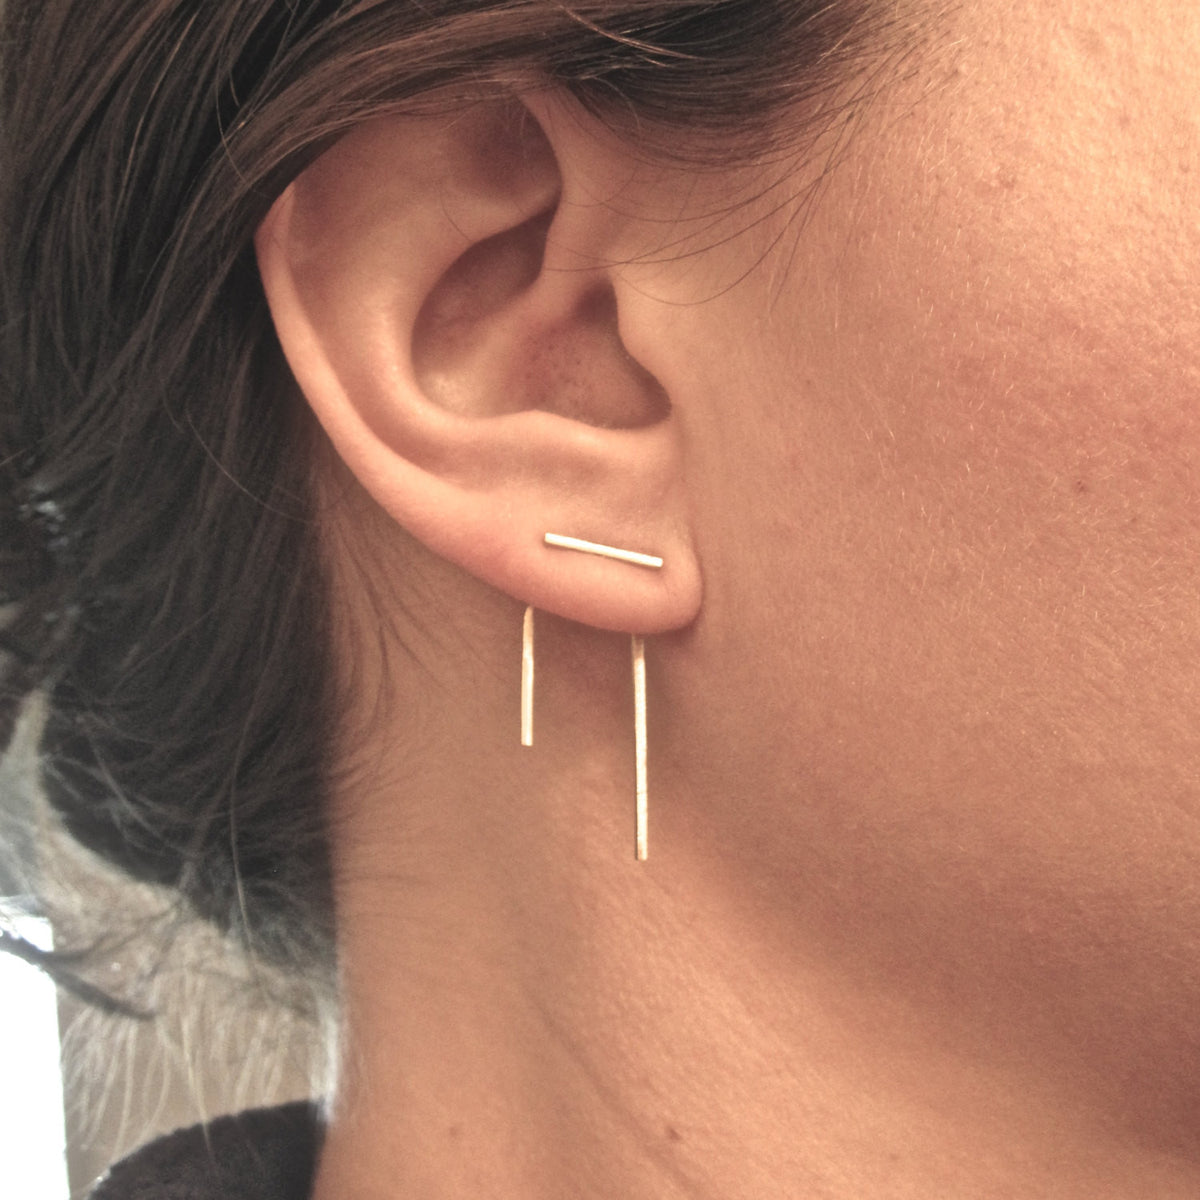 Distinctive Boho Hand-Made Styling - Staple Line Ear Jacket Stud Earrings As Seen On BuzzFeed - 0144 - Virginia Wynne Designs